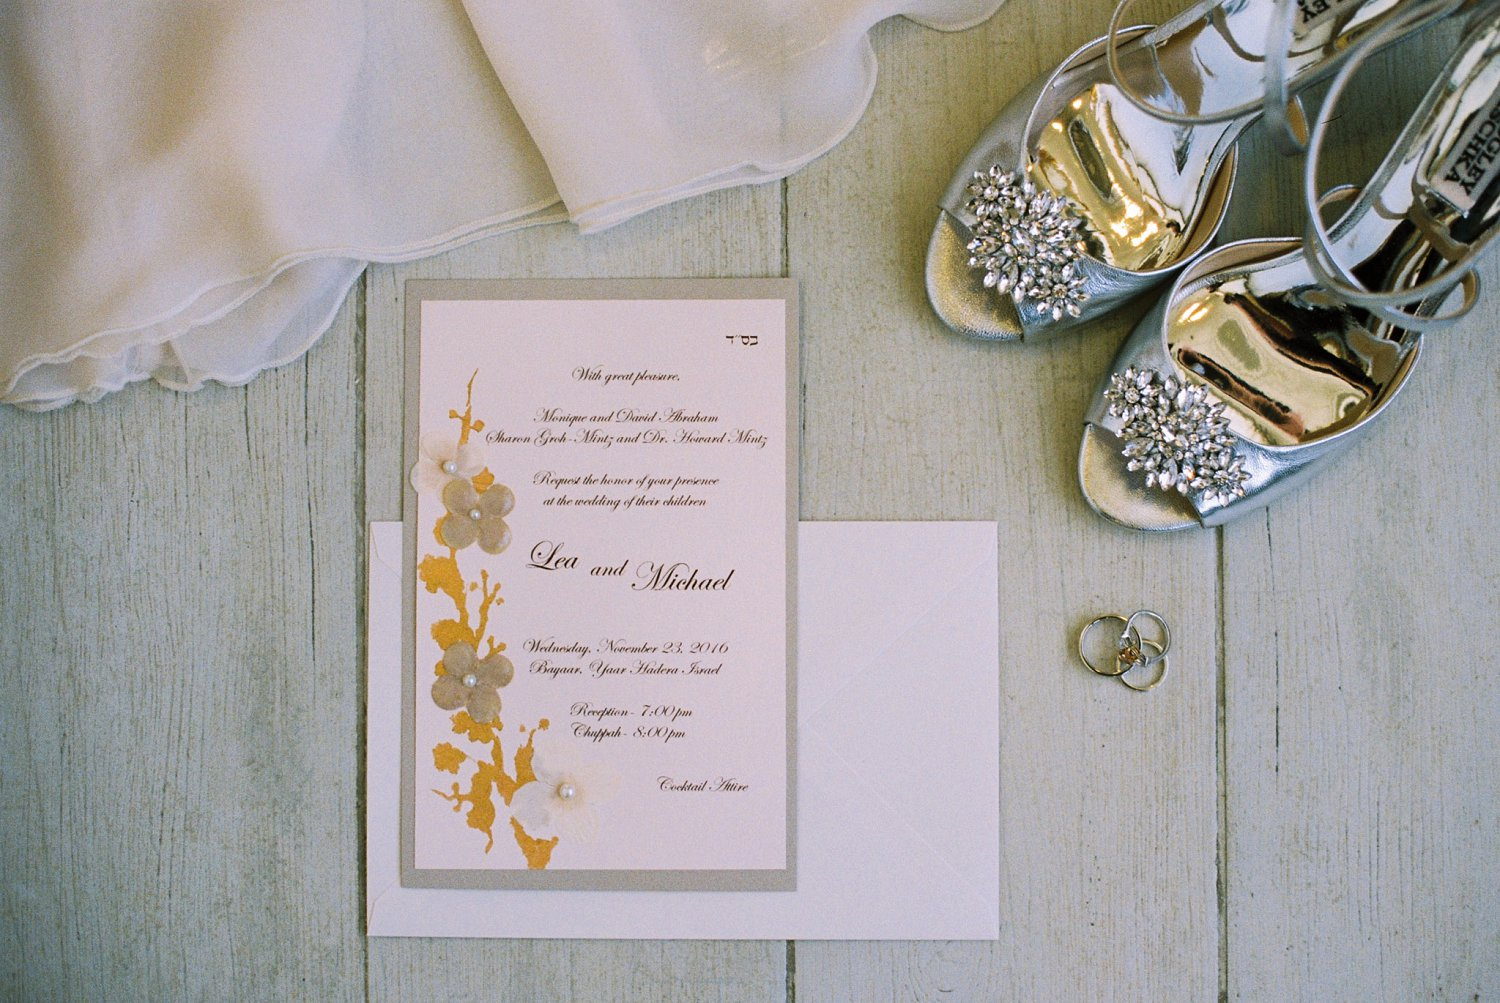 Styled wedding details - invitation, rings, and Badgley Mischka shoes